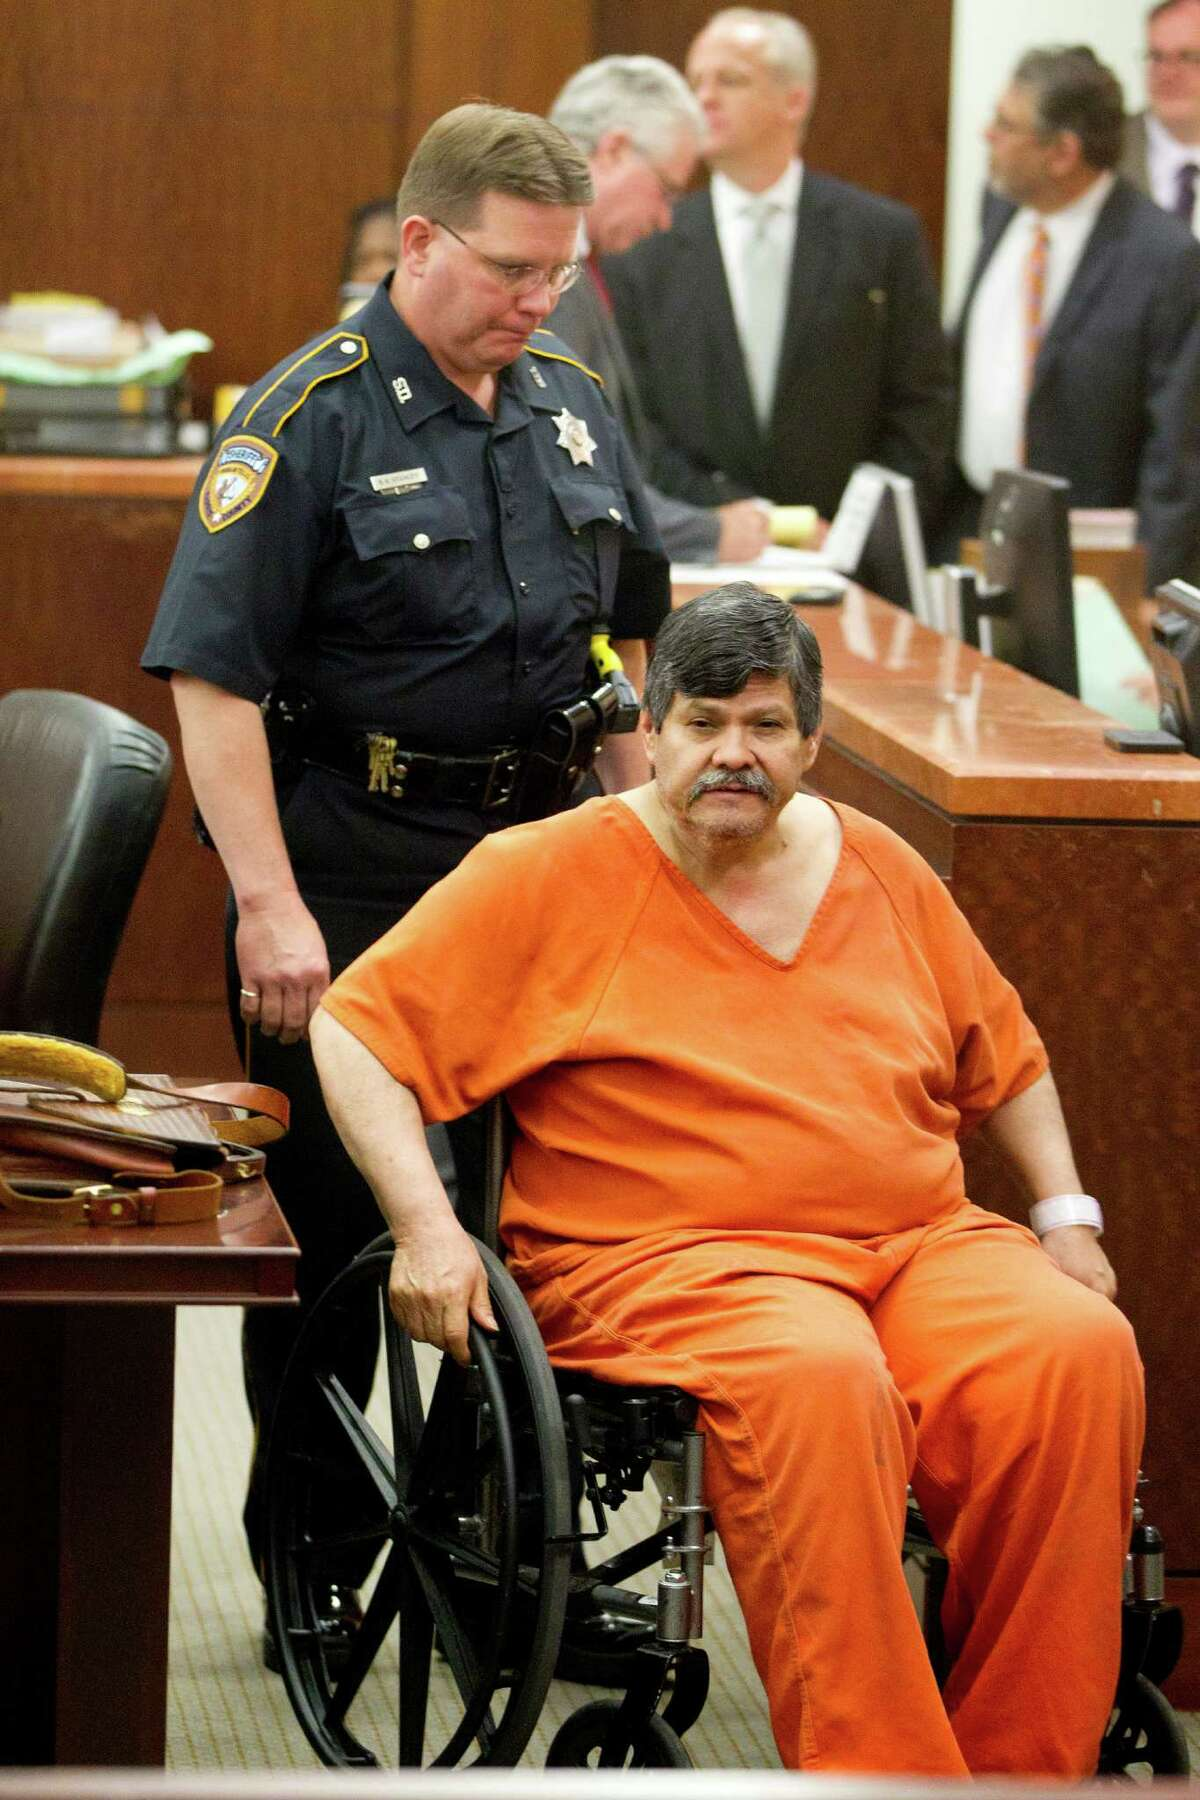 Guillermo Correa, 56, who said he has lived in the United States for 36 years, used a translator to address the judge in court on Monday.